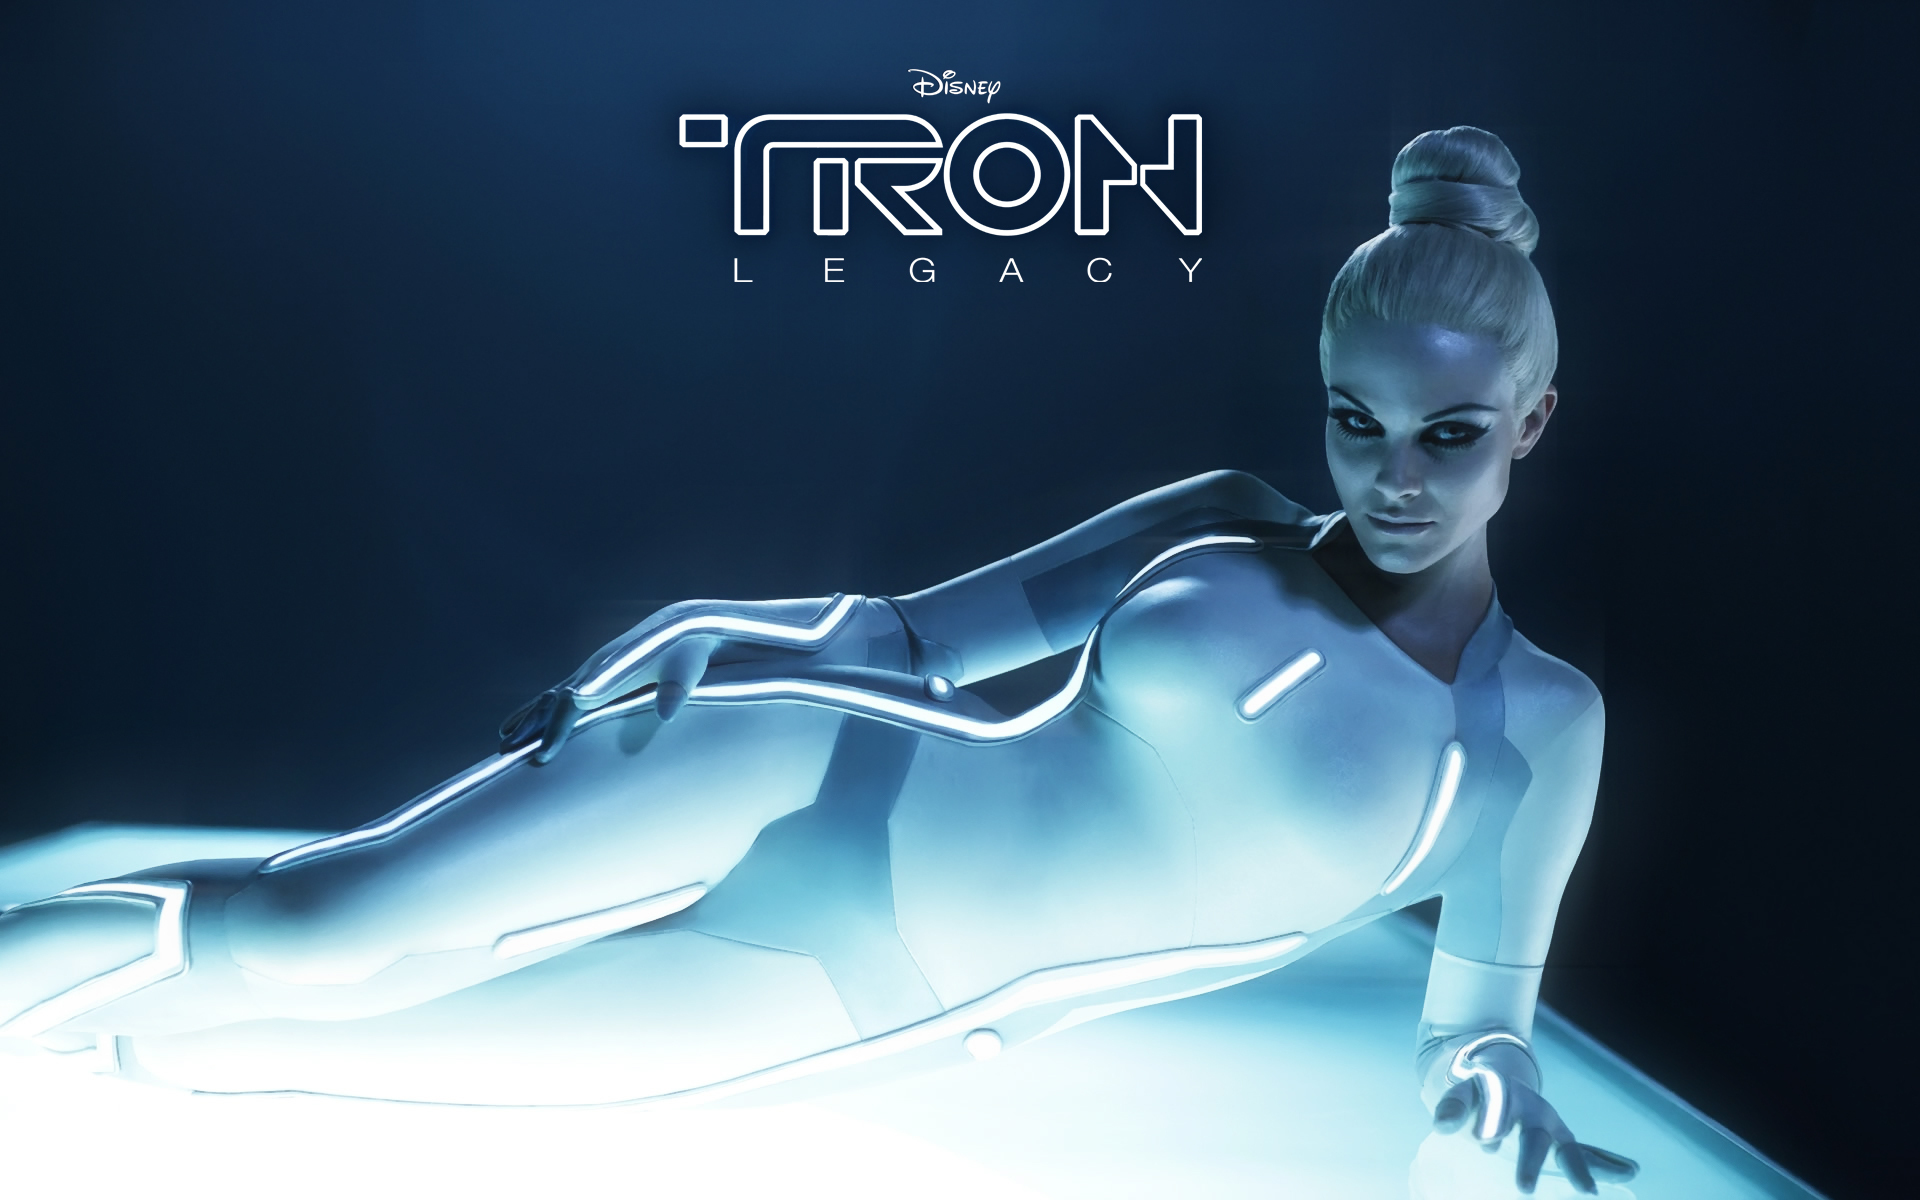 tron legacy images tron: legacy hd wallpaper and background photos